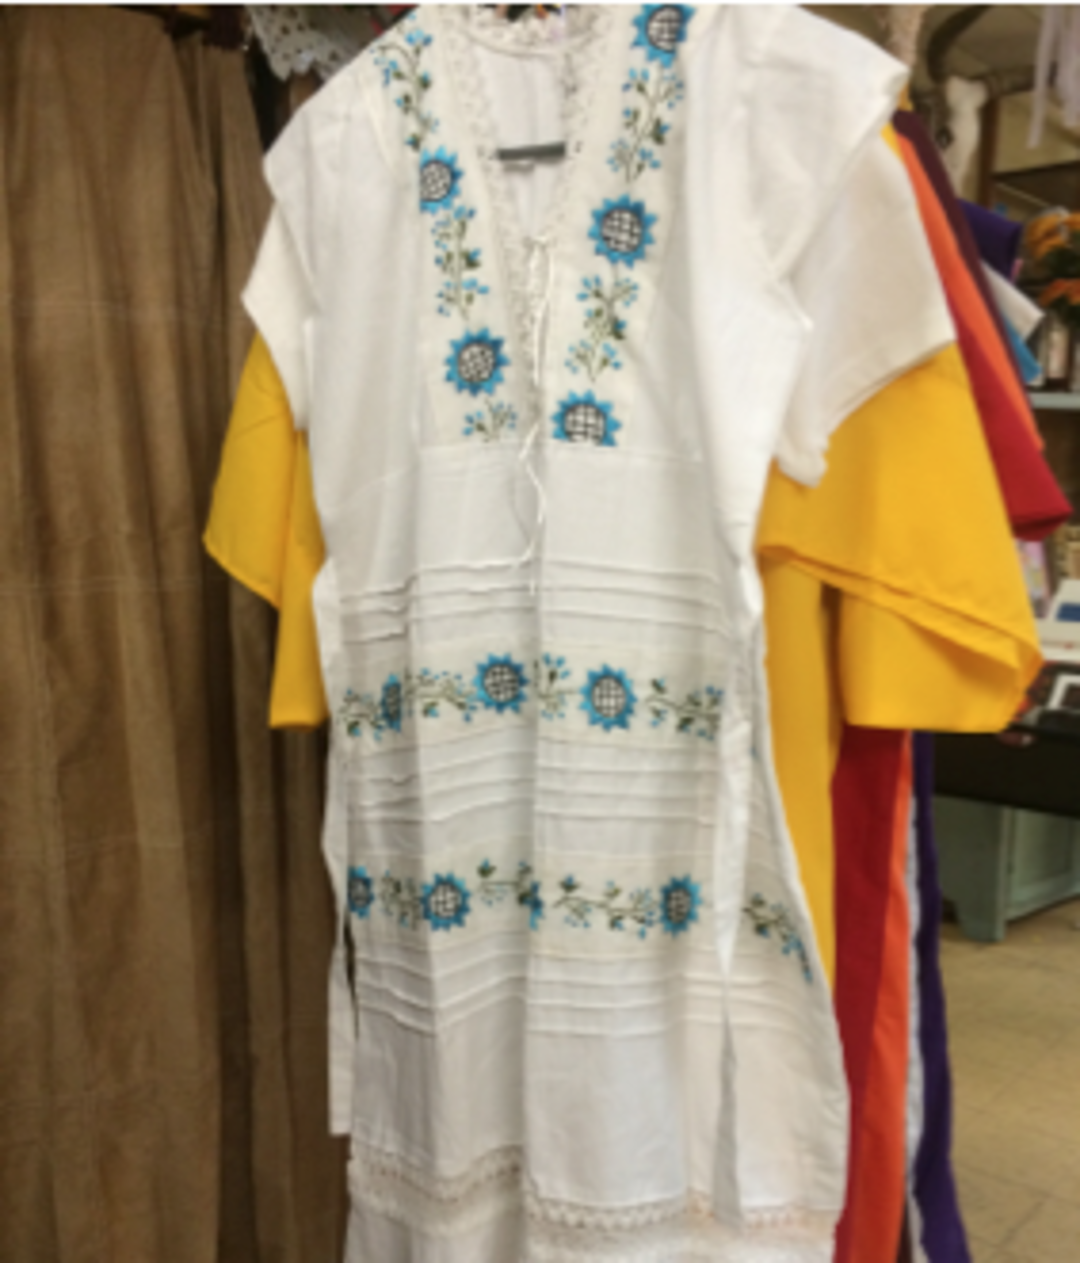 Boho Clothing On 19th Street In Houston Texas While th Street is lined